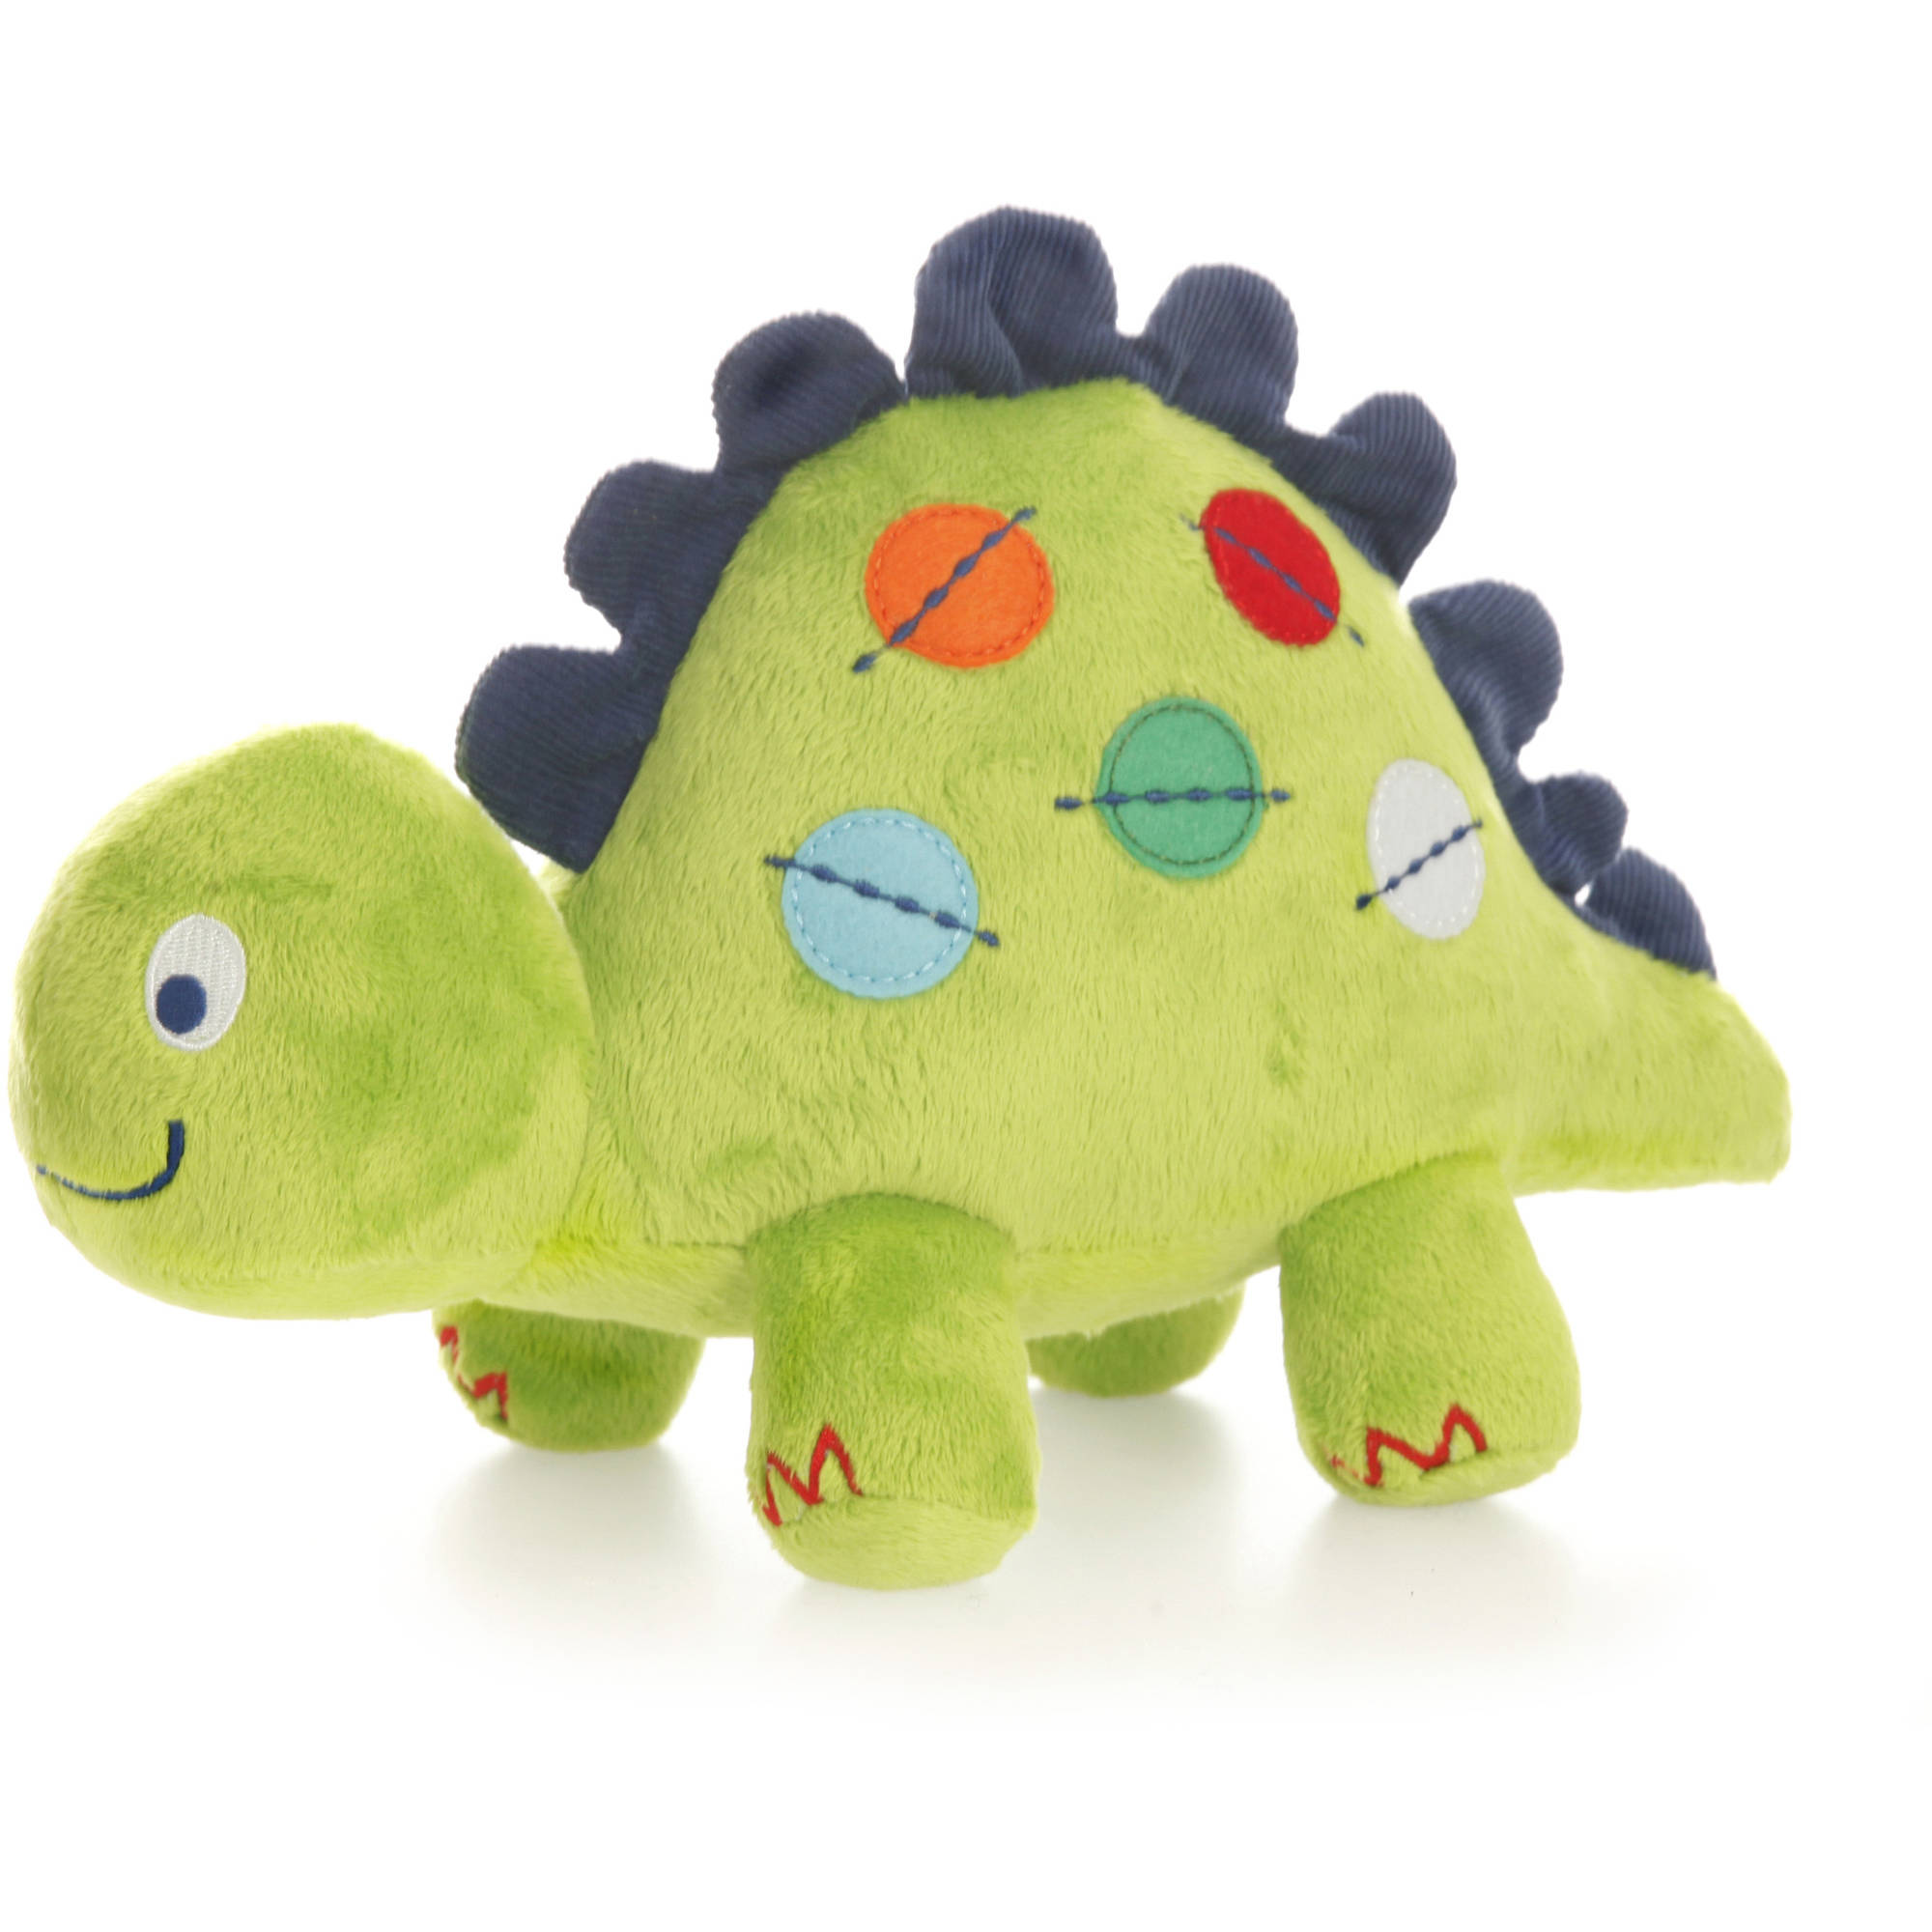 Bananafish Little Dino Collection Plush Dinosaur